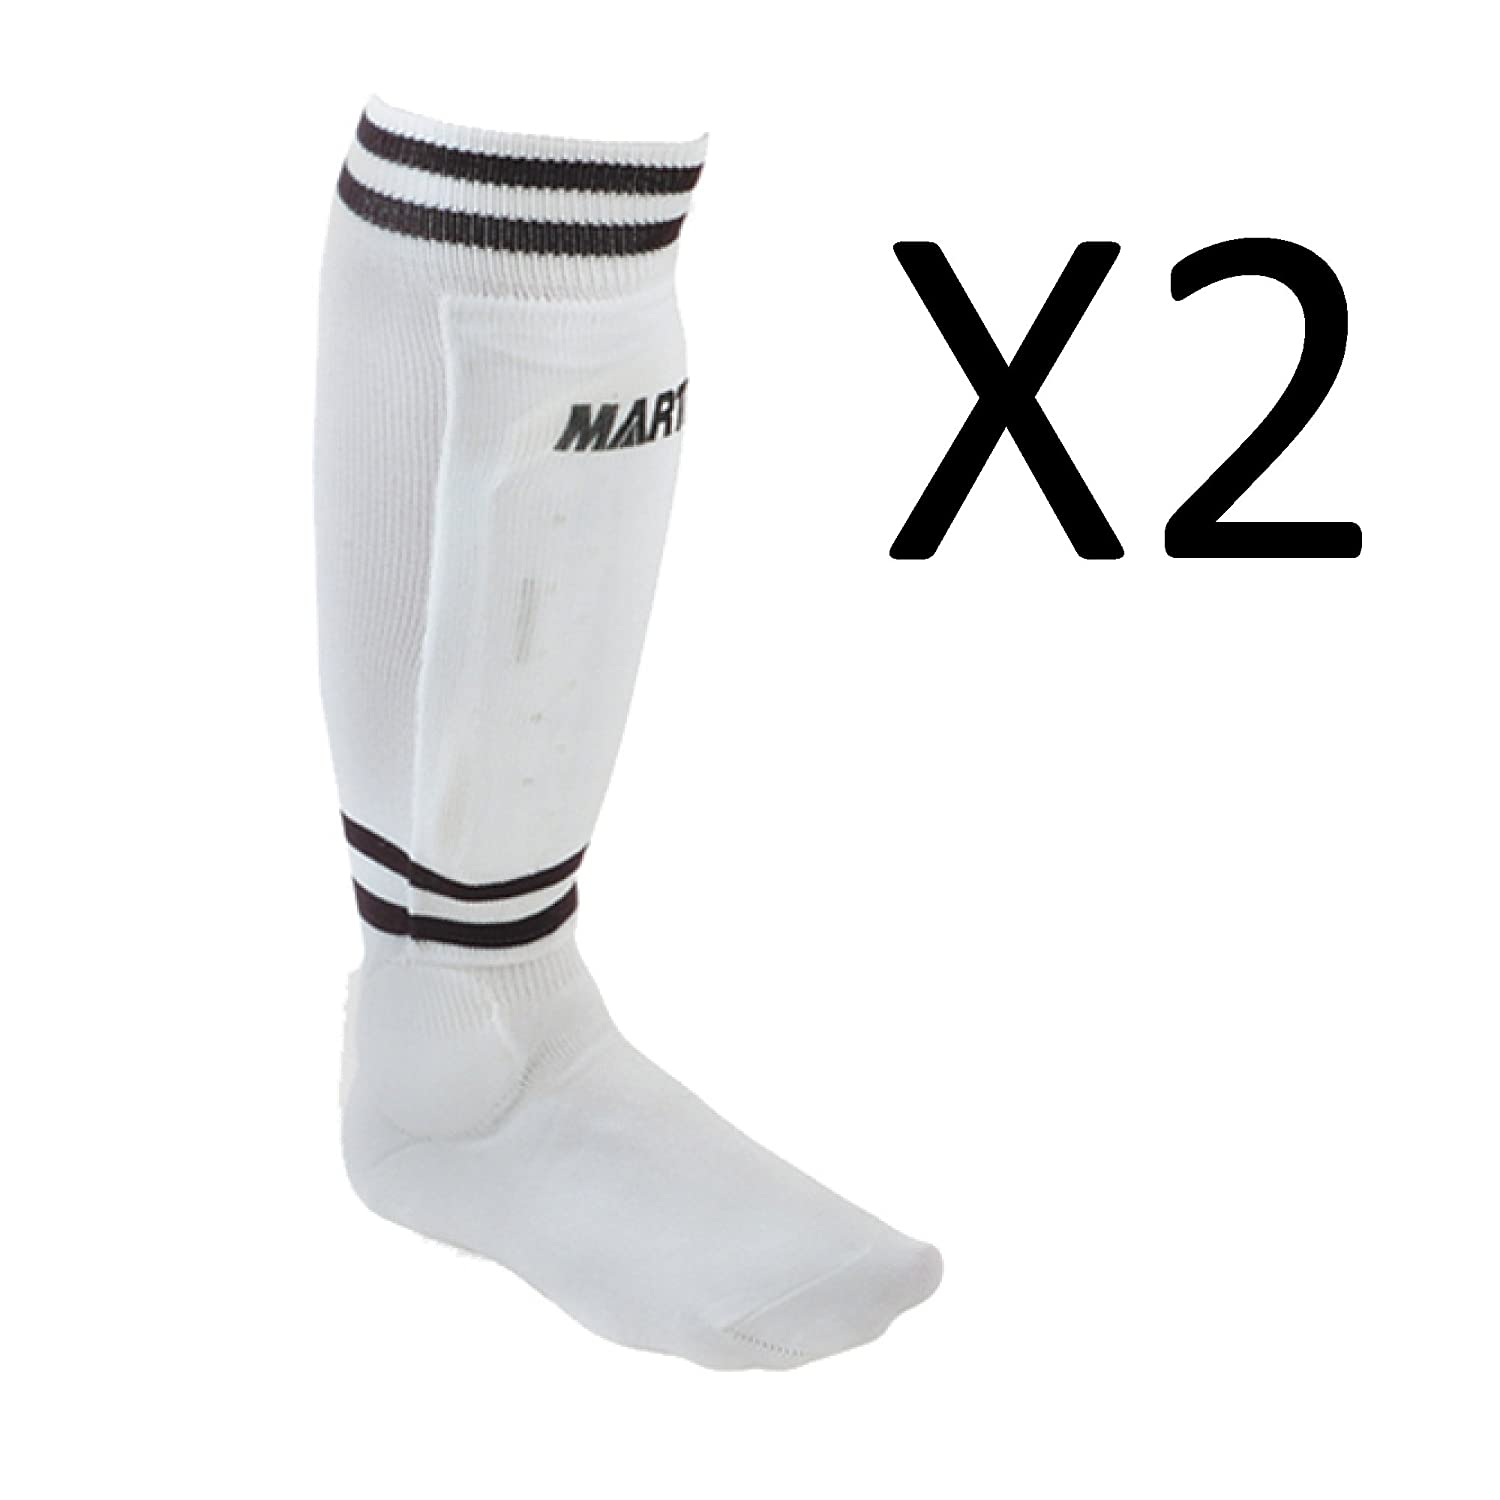 Martin Youth Soccer Shinguards Sock Shin Guard White Large soc8-wht ( 2 Pack ) B01LXXB9E1